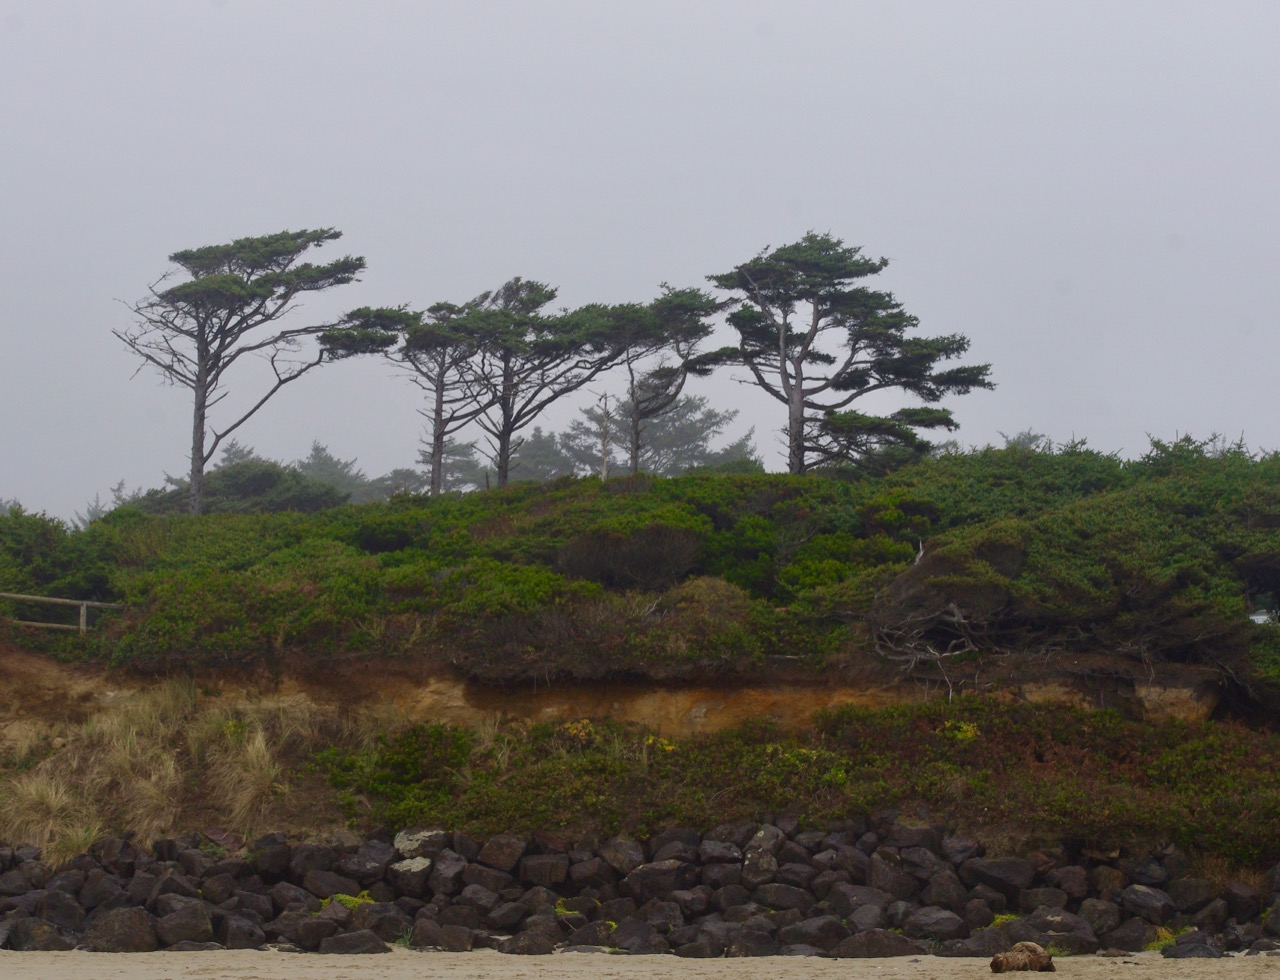 We went walking on the beach and looked up at the bluff on which the campground is located. There were these trees sculpted by the wind.